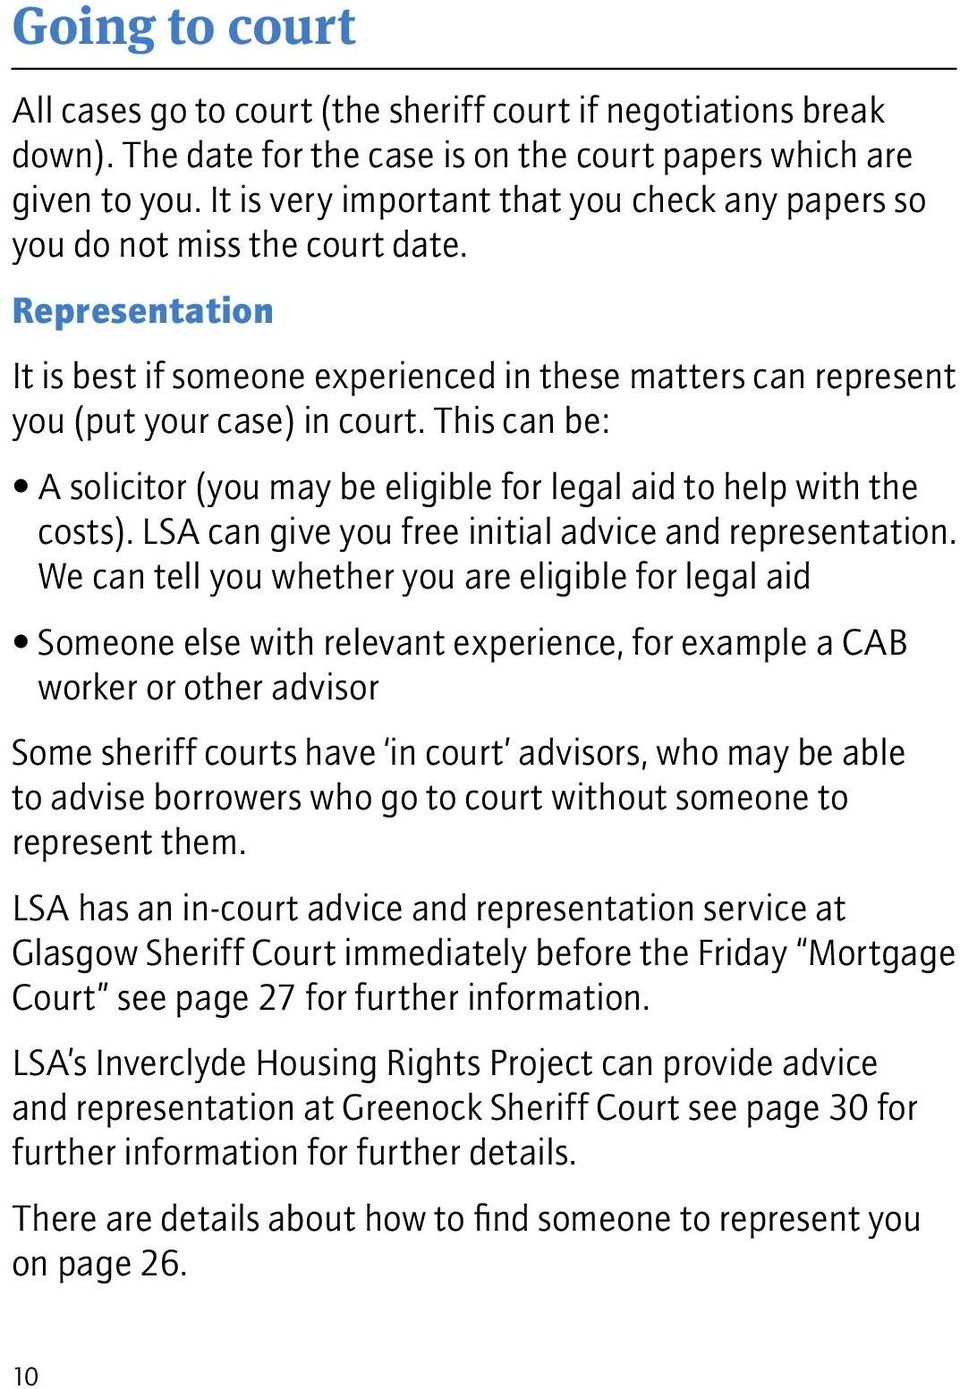 This can be: A solicitor (you may be eligible for legal aid to help with the costs). LSA can give you free initial advice and representation.